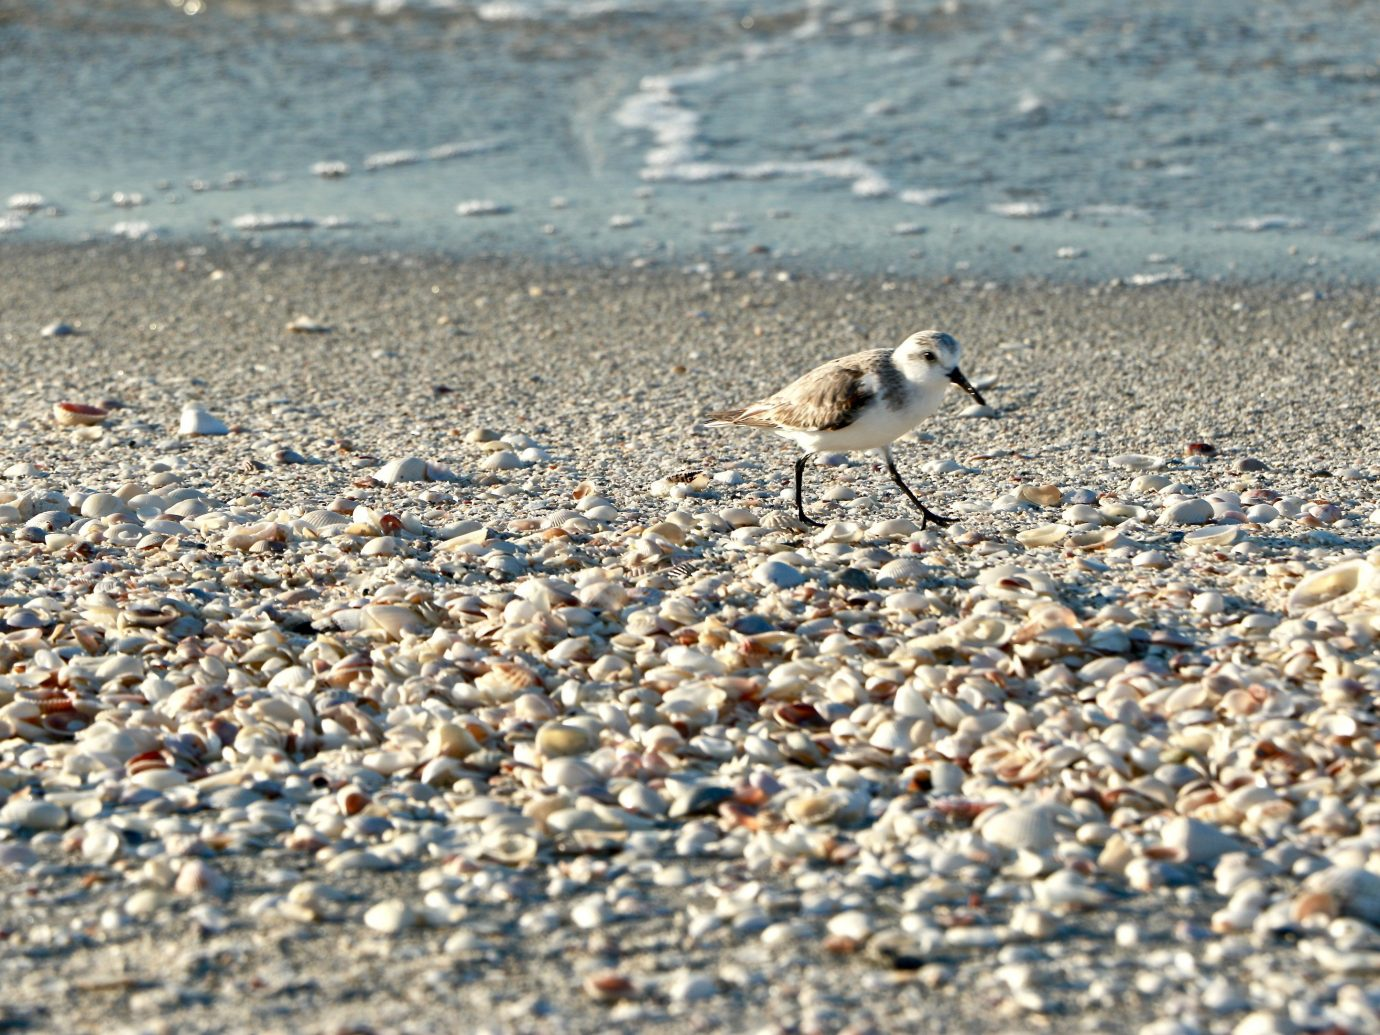 Secret Getaways Trip Ideas ground outdoor Bird animal Beach Nature standing aquatic bird sand Wildlife plover rocky Sea rock flock macro photography material shorebird shore sandy